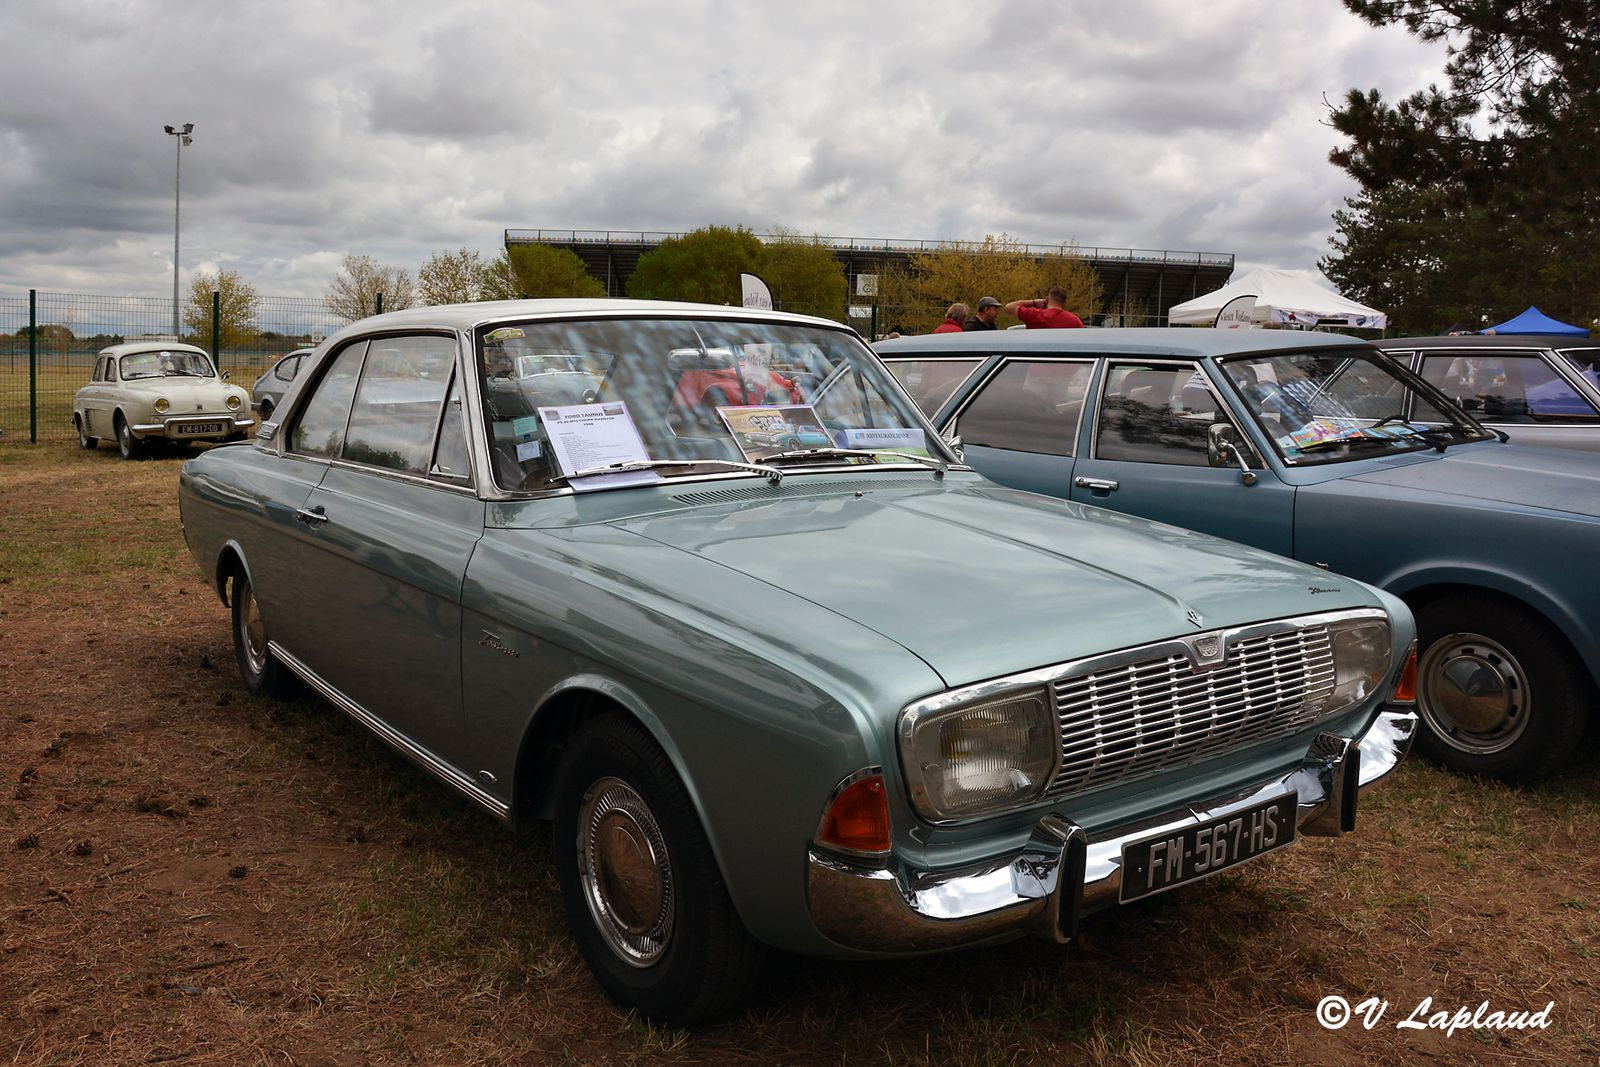 Ford Taunus 2.0m TS Coupé hardtop de 1966, Classic Days 2020, Maggny-Cours.